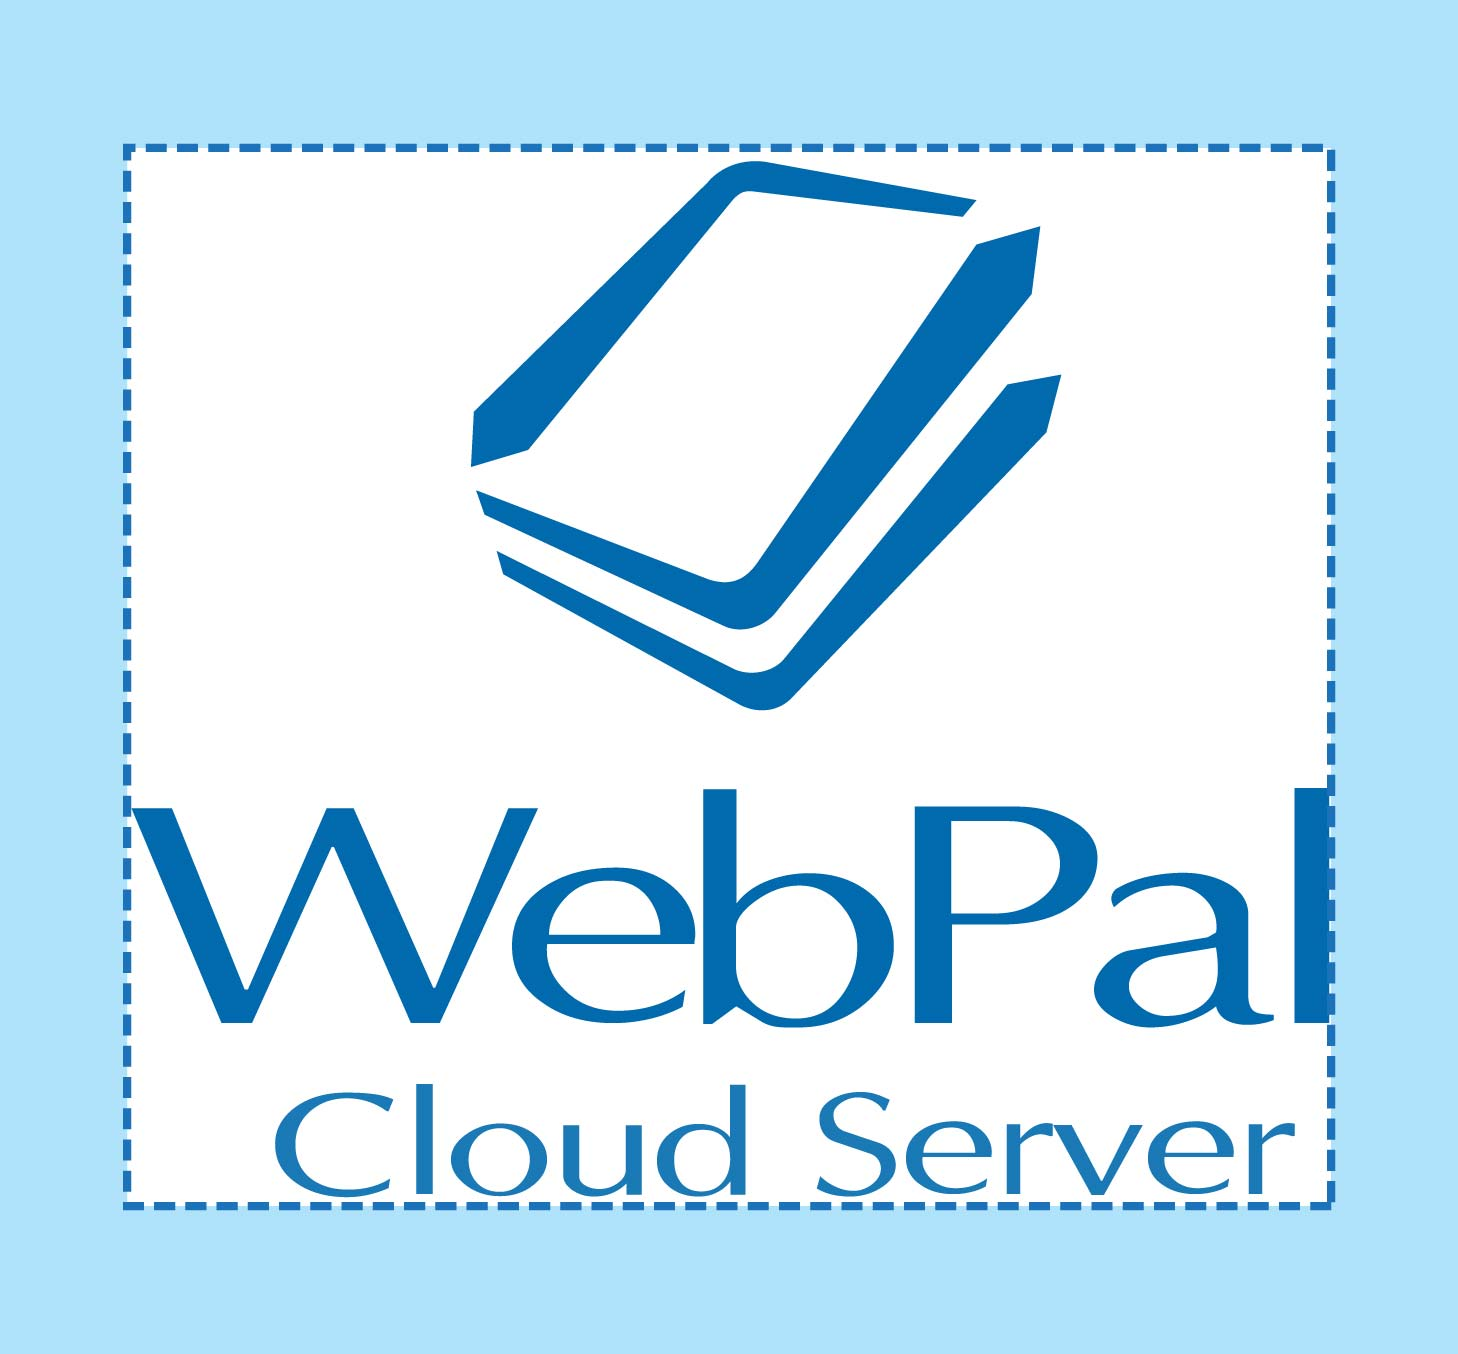 webpal cloud server white space, padding